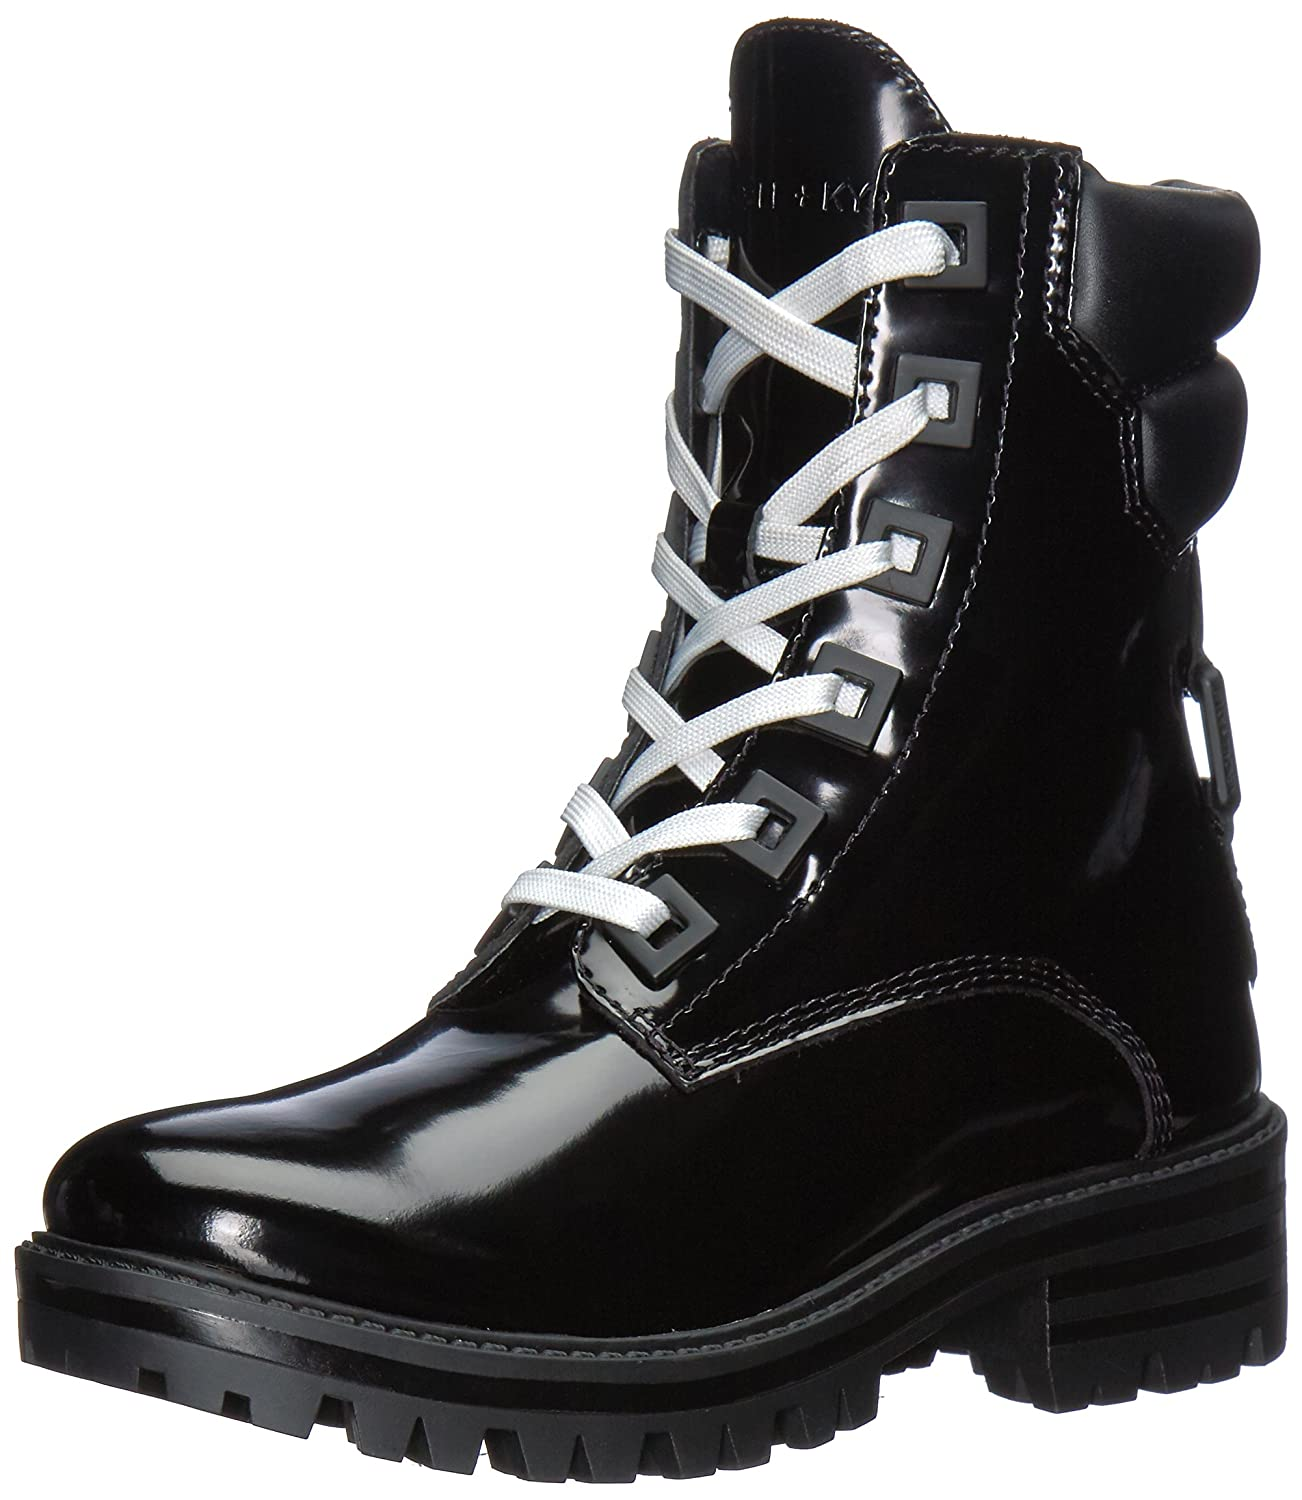 KENDALL + KYLIE Women's East Combat Boot B07117HNMP 5 B(M) US|Black